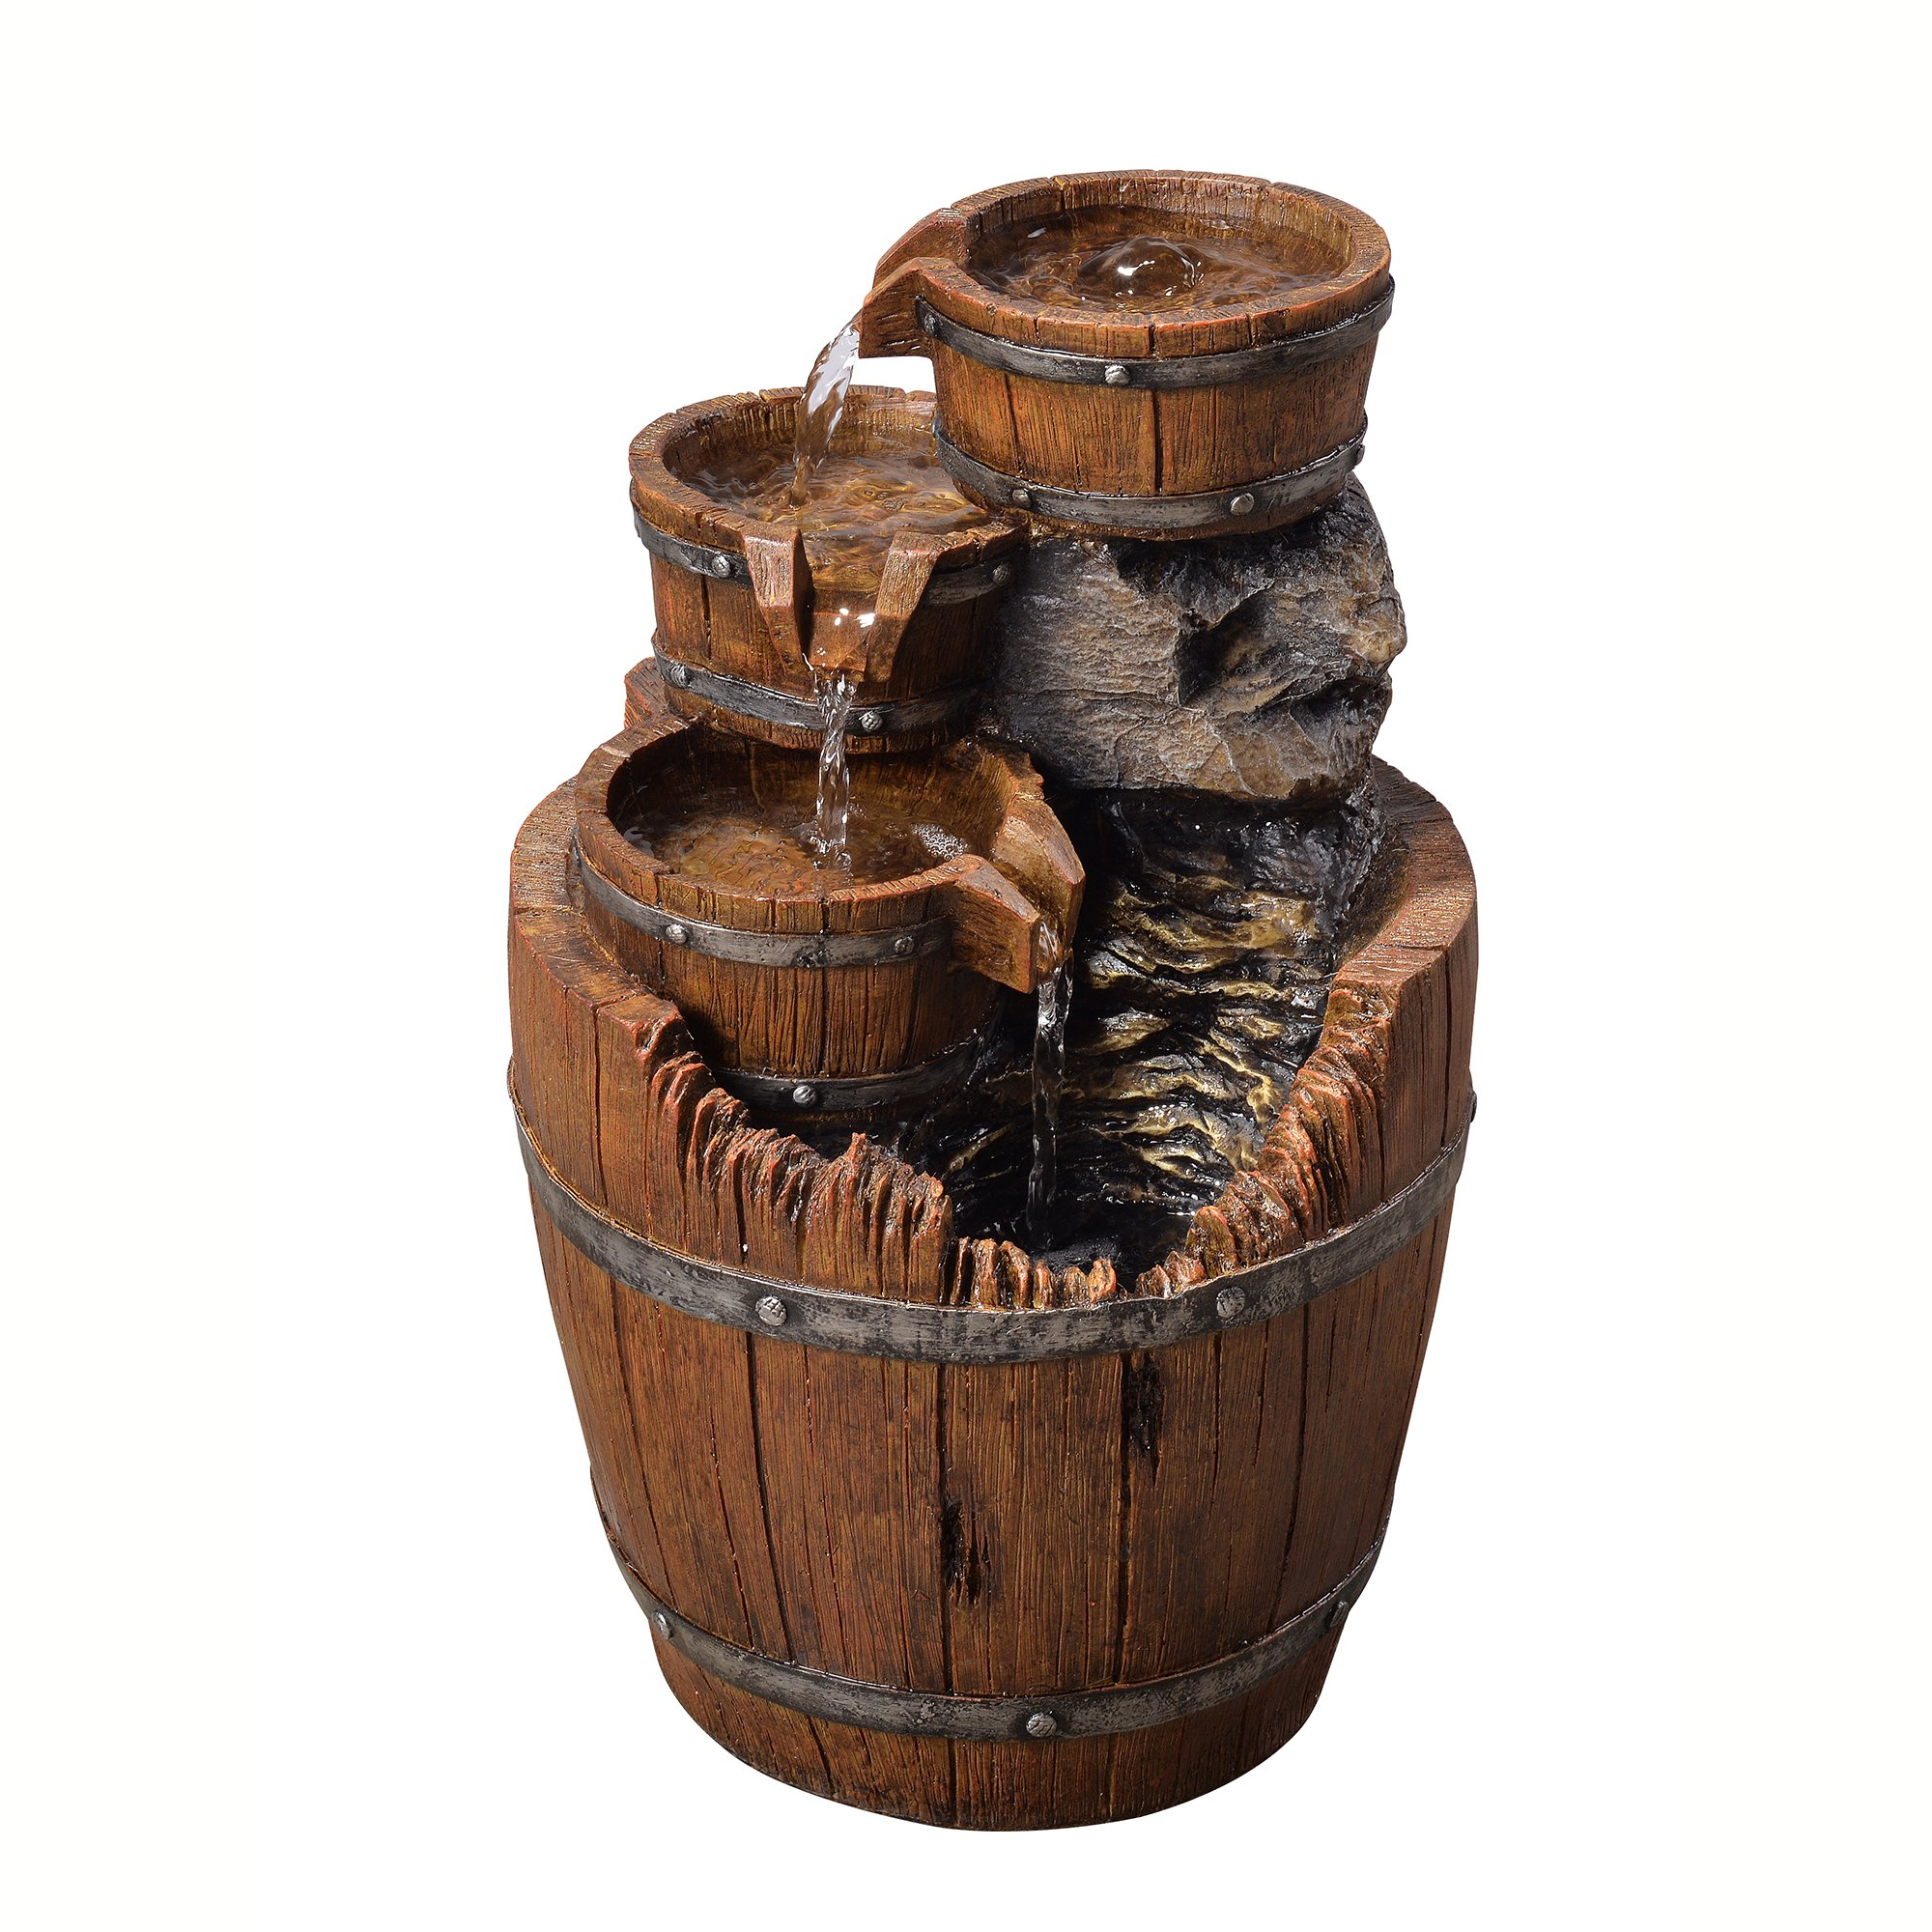 Peaktop VFD8305 Outdoor Wood Barrels Fountain, 17'', Brown